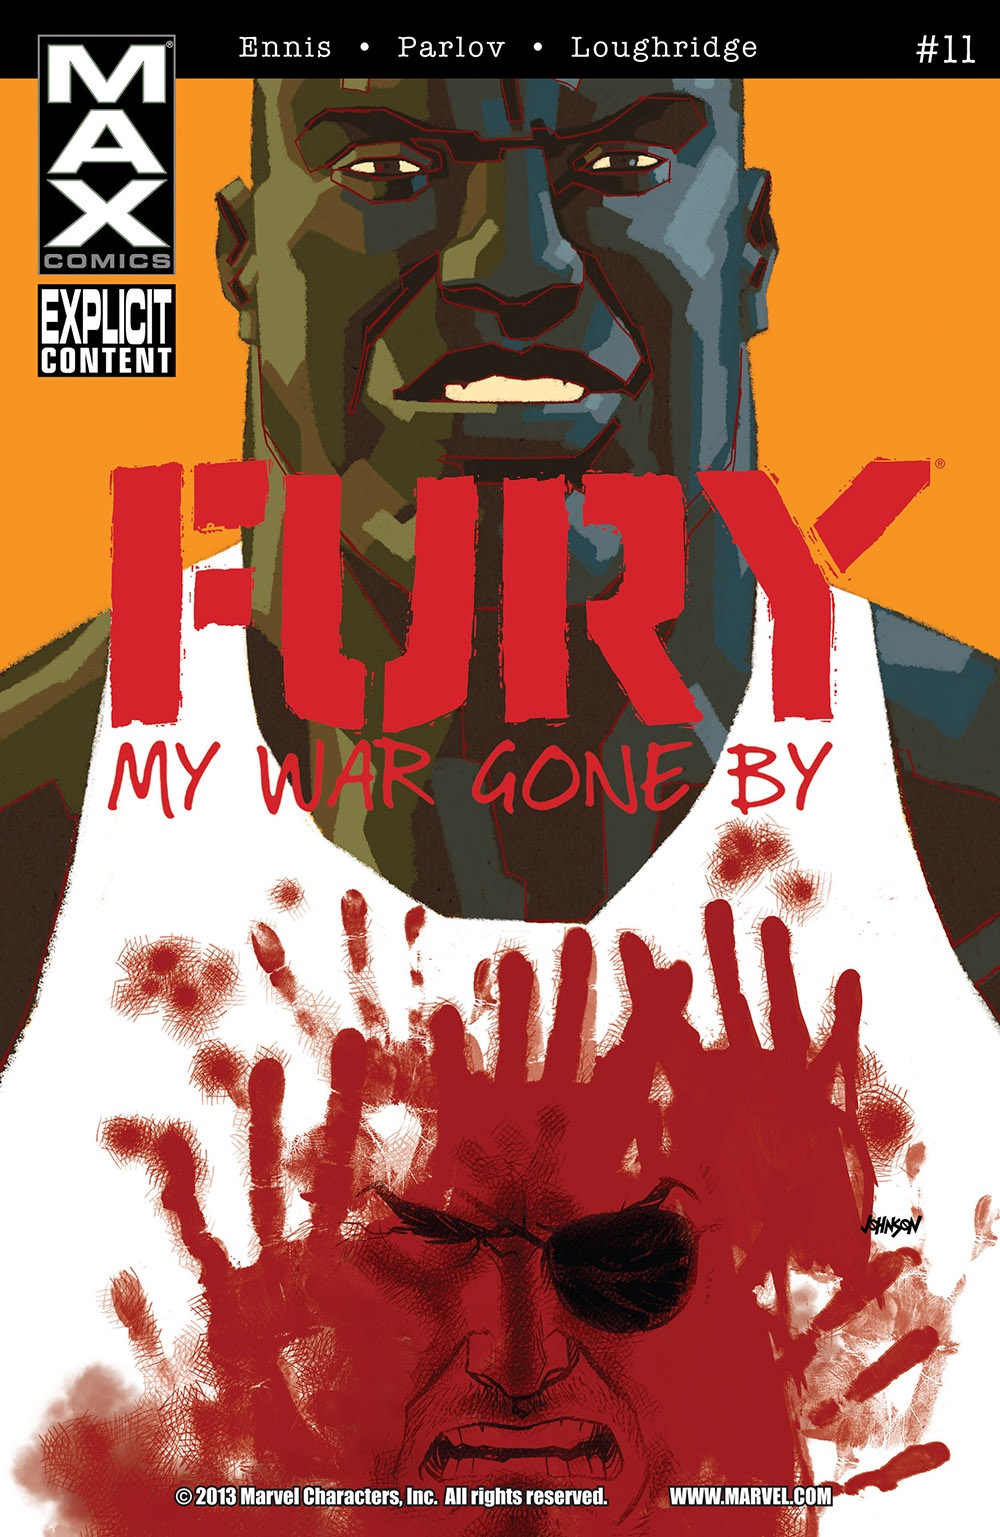 Ennis Parlov Loughridge Fury Max (2013 Marvel) #11